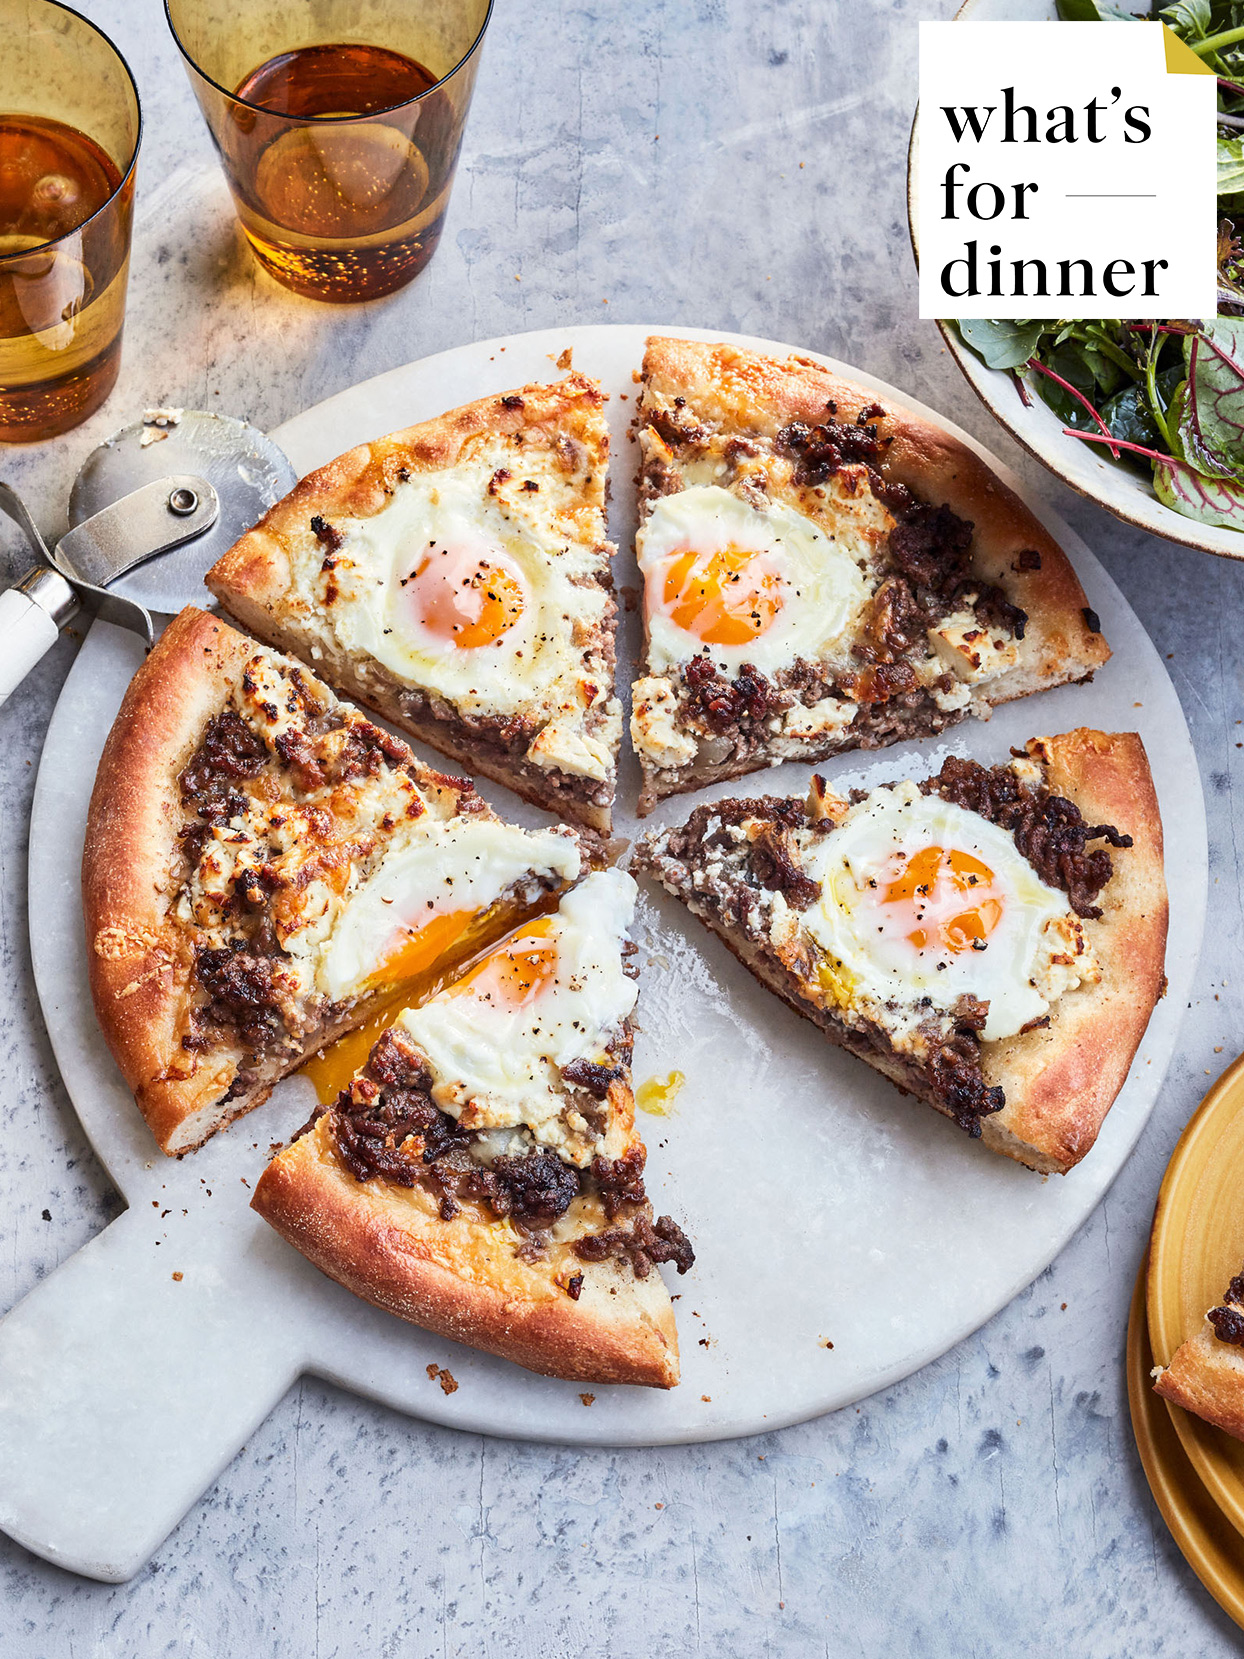 spiced meat and feta pizza with eggs